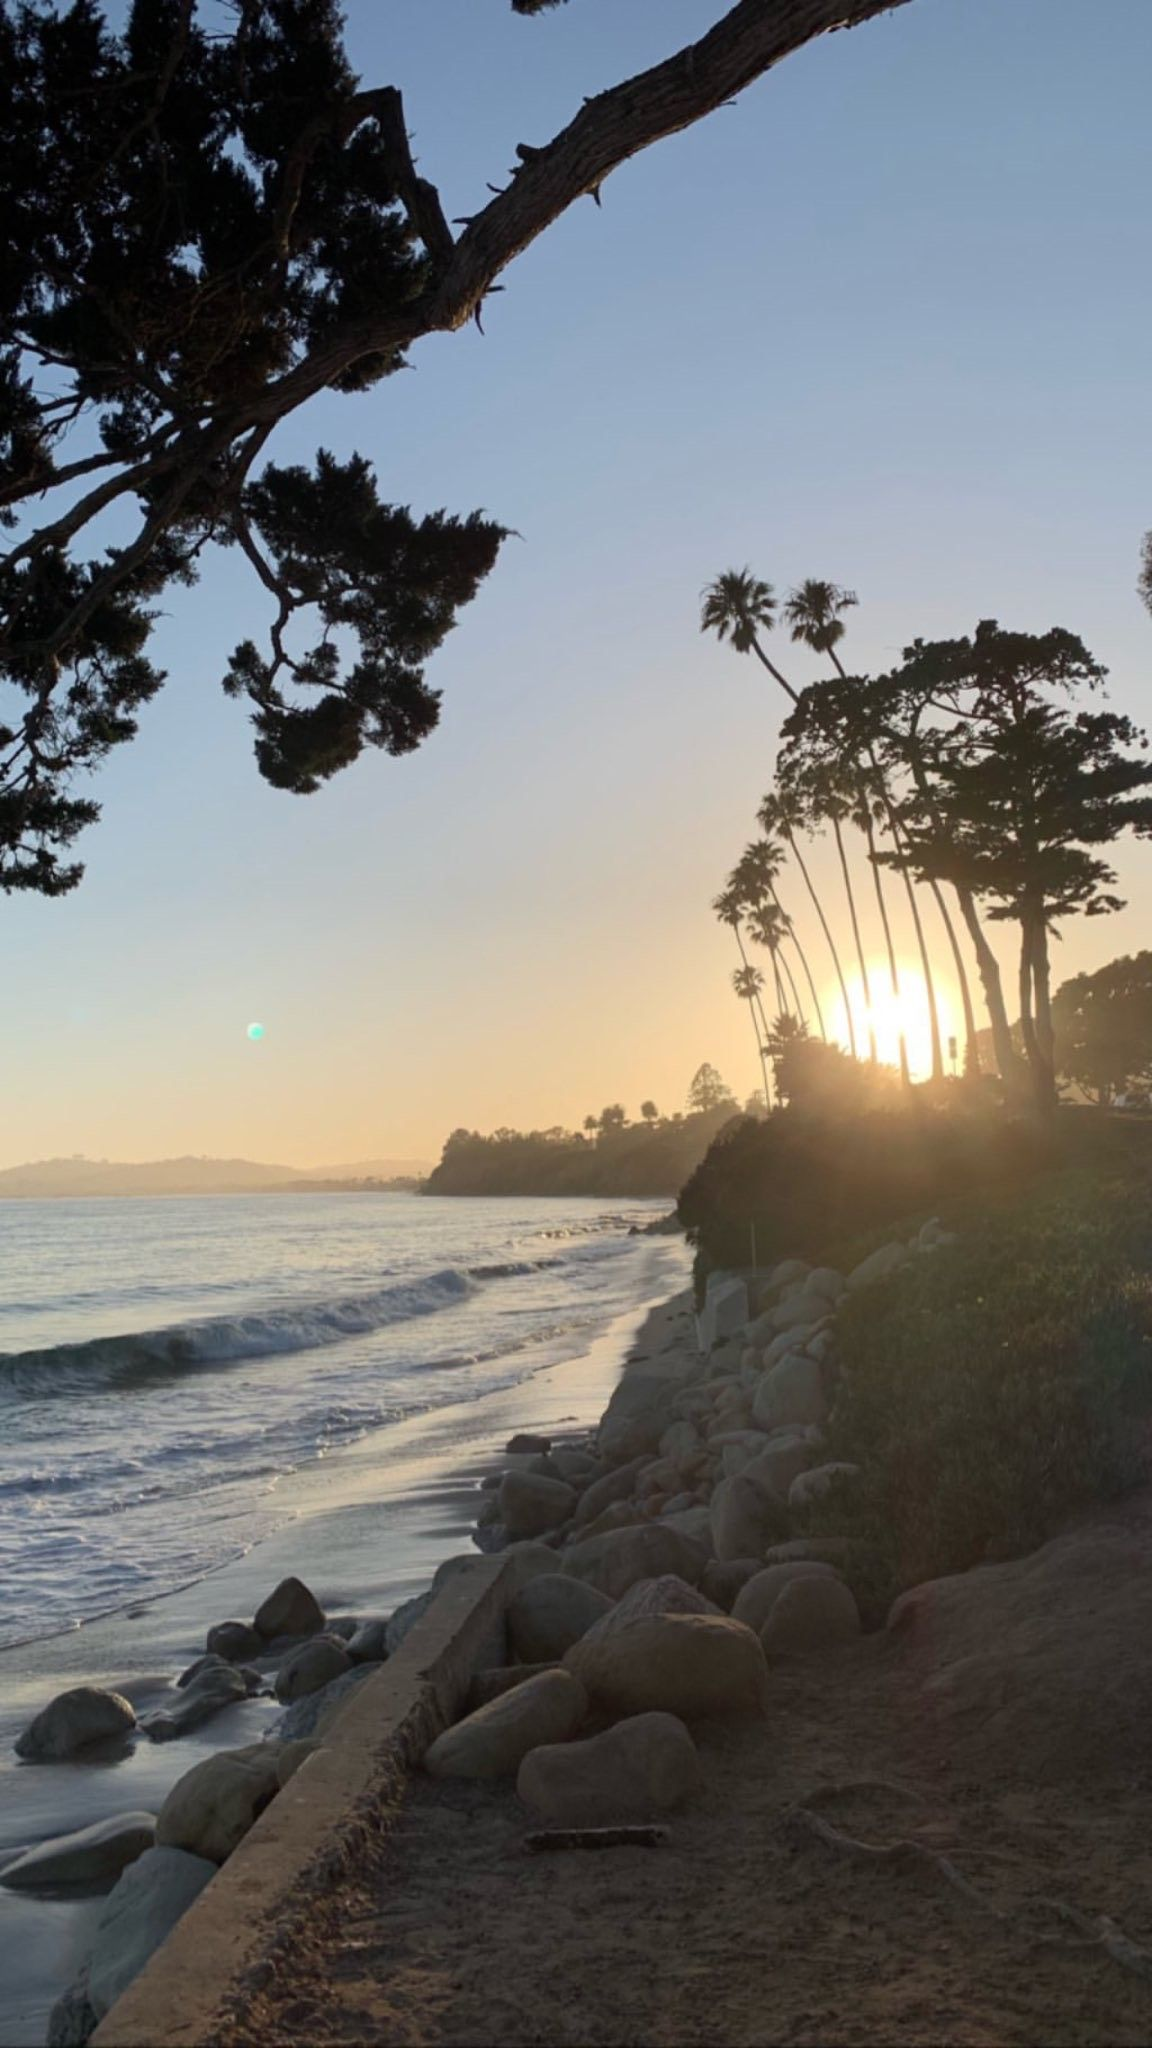 There are 83.61 miles from Los Angeles to Montecito in the northwest direction and 92 miles by car. Los Angeles and Montecito are 1 hour 30 mins far apart, if you drive non-stop .  @MullenUpates  #ParadiseRetreats #SeeSB #VisitSantaBarbara #VIsitCali #BookDirect #VacationRentals #DreamVacation #ExploreCali #VisitCalifornia #CaliforniaDreamin #Montecito #LosAngeles #RoadTrip #DayTrip #ExploreC